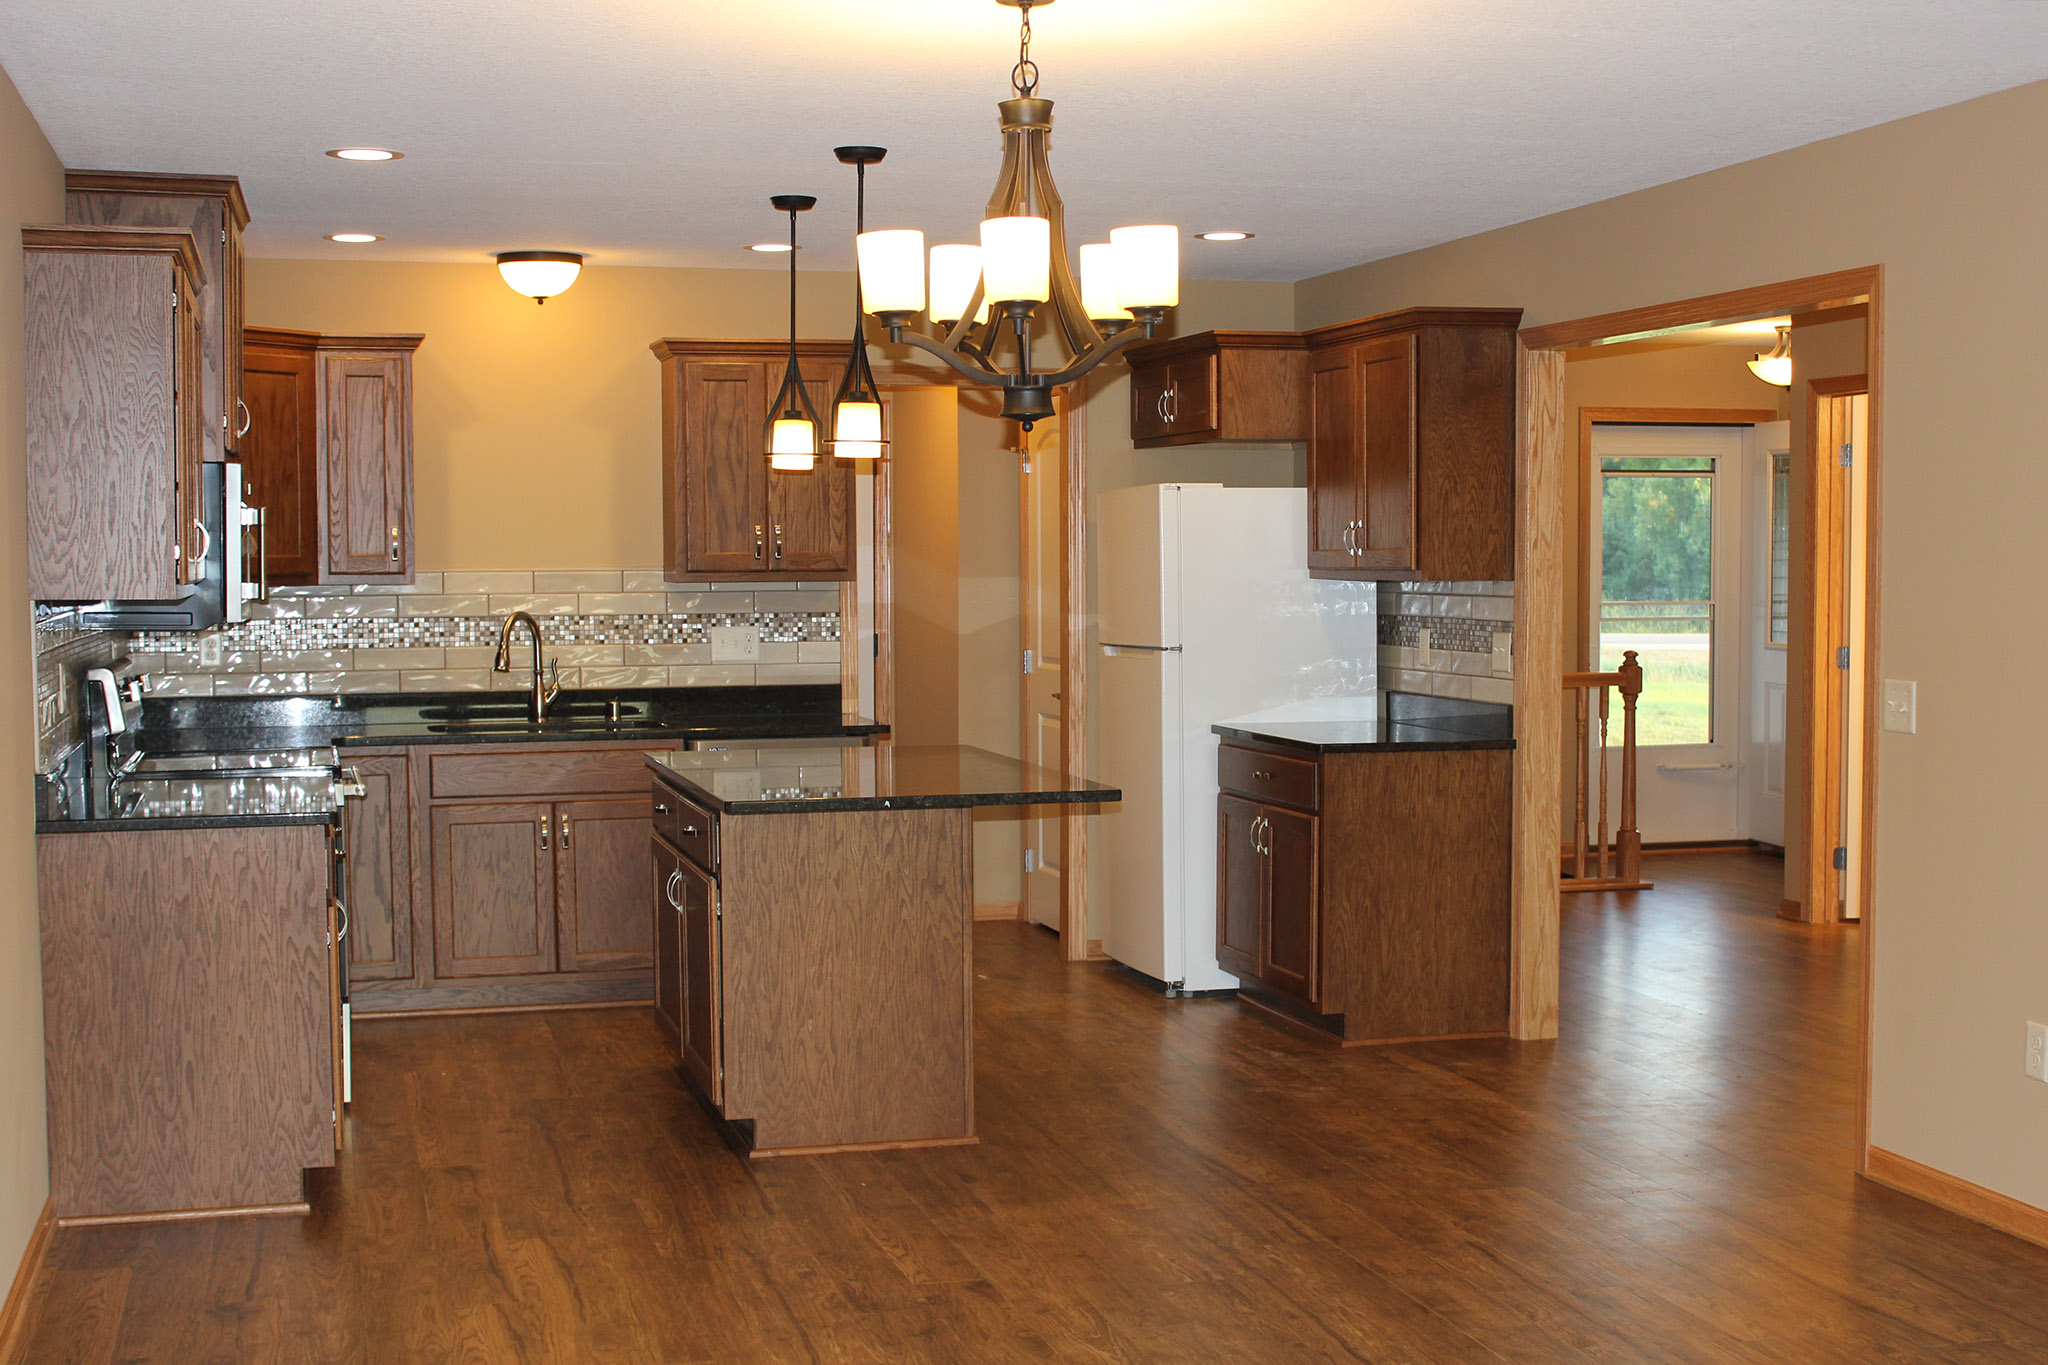 Open kitchen with island and wood cabinetry